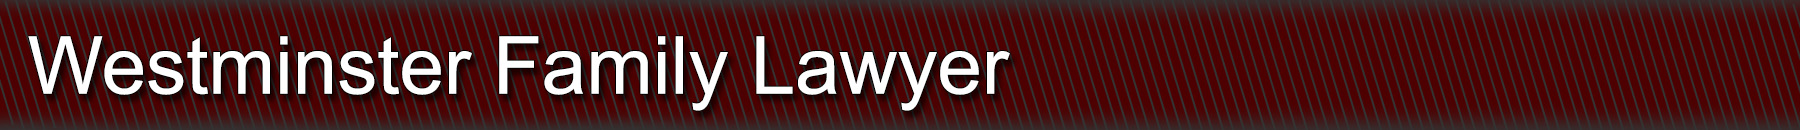 Westminster MD Family Lawyer Legal Services